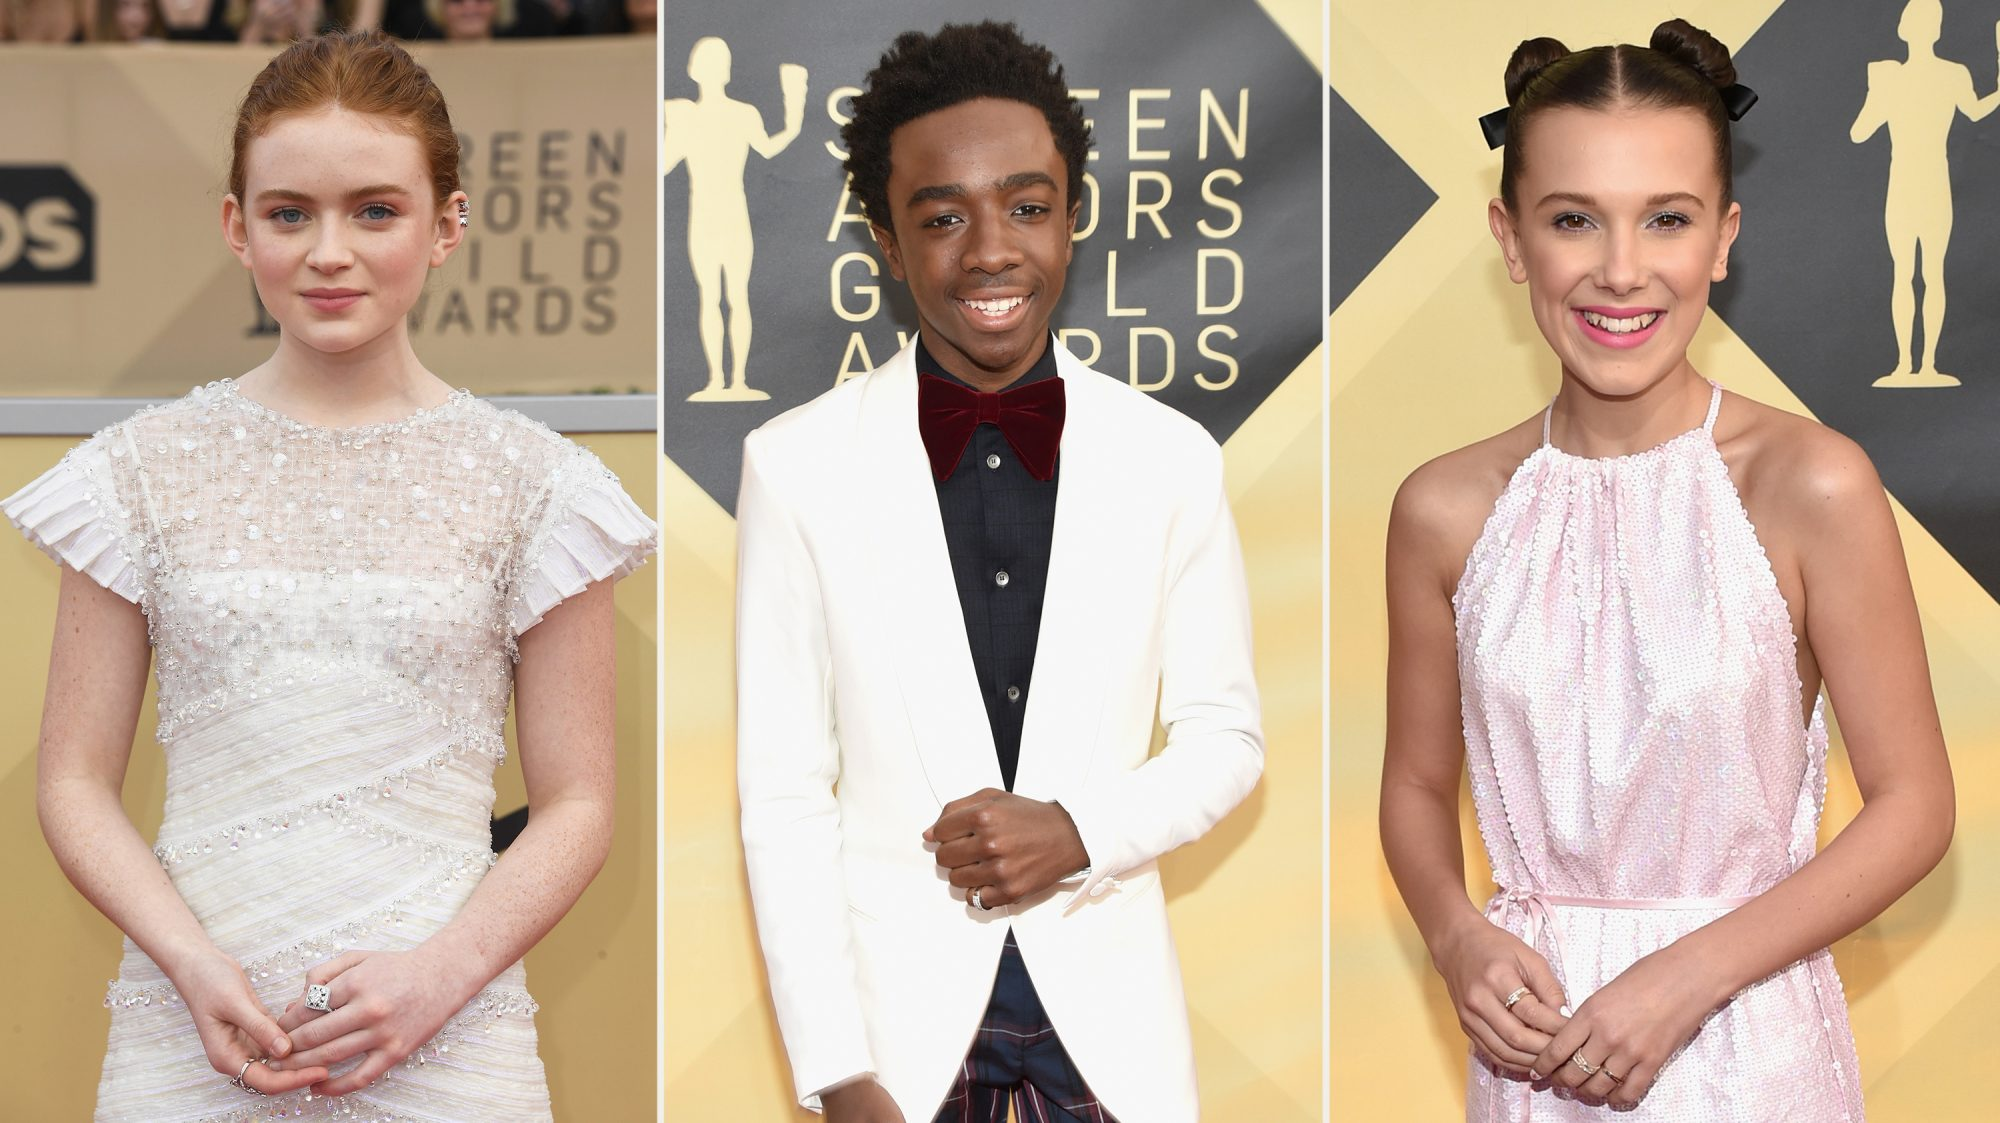 fashion standouts at the SAG awards stranger things cast